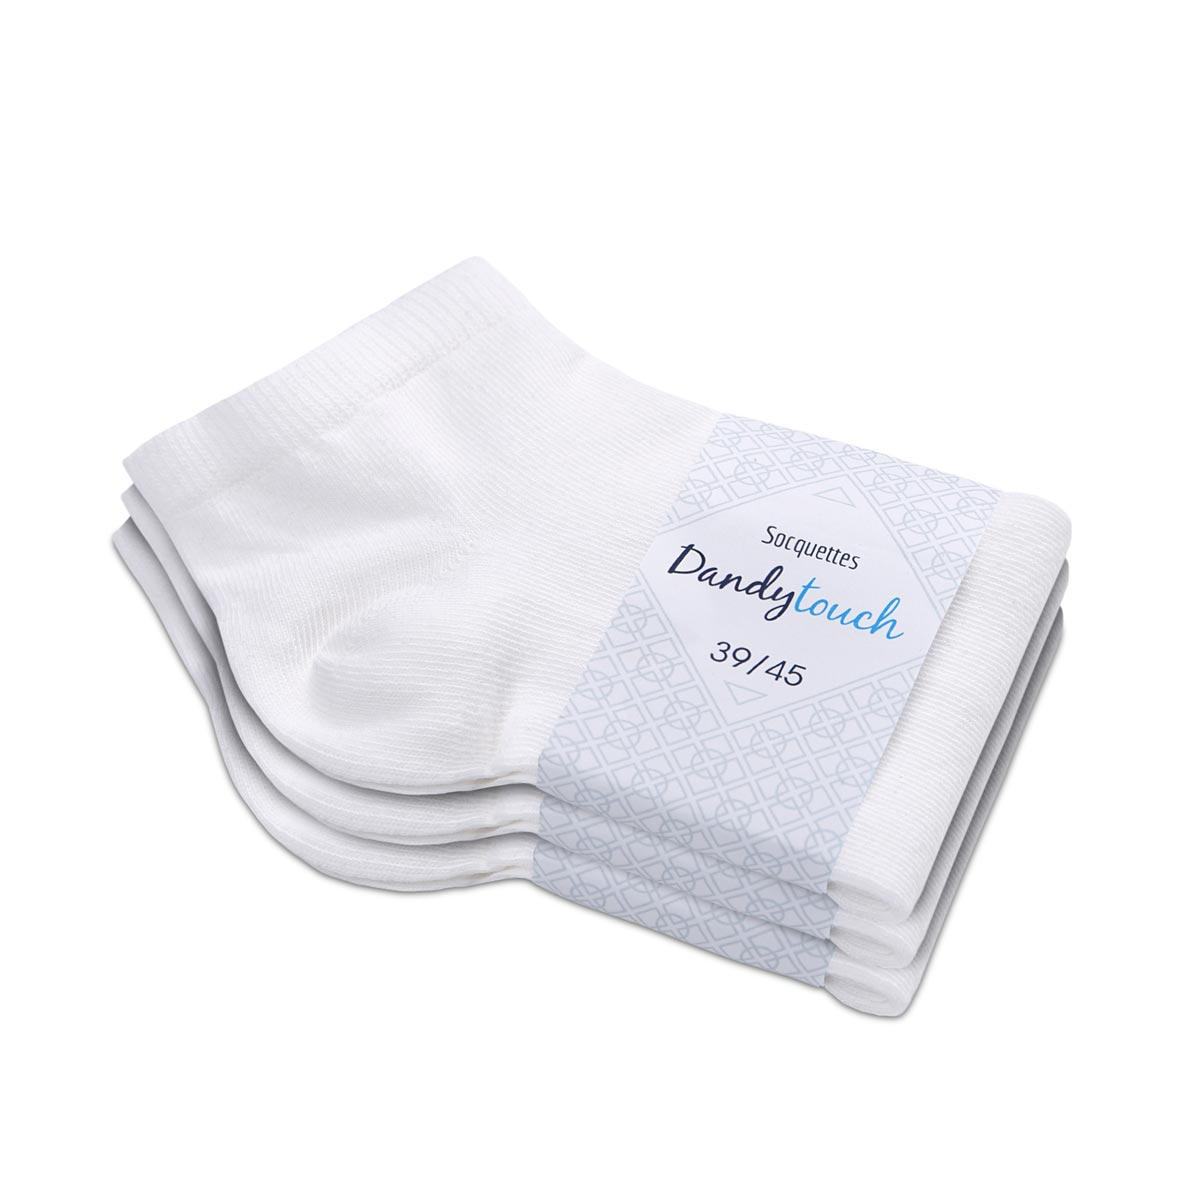 CH-00505_E12-1--_Soquettes-homme-blanches-3-paires